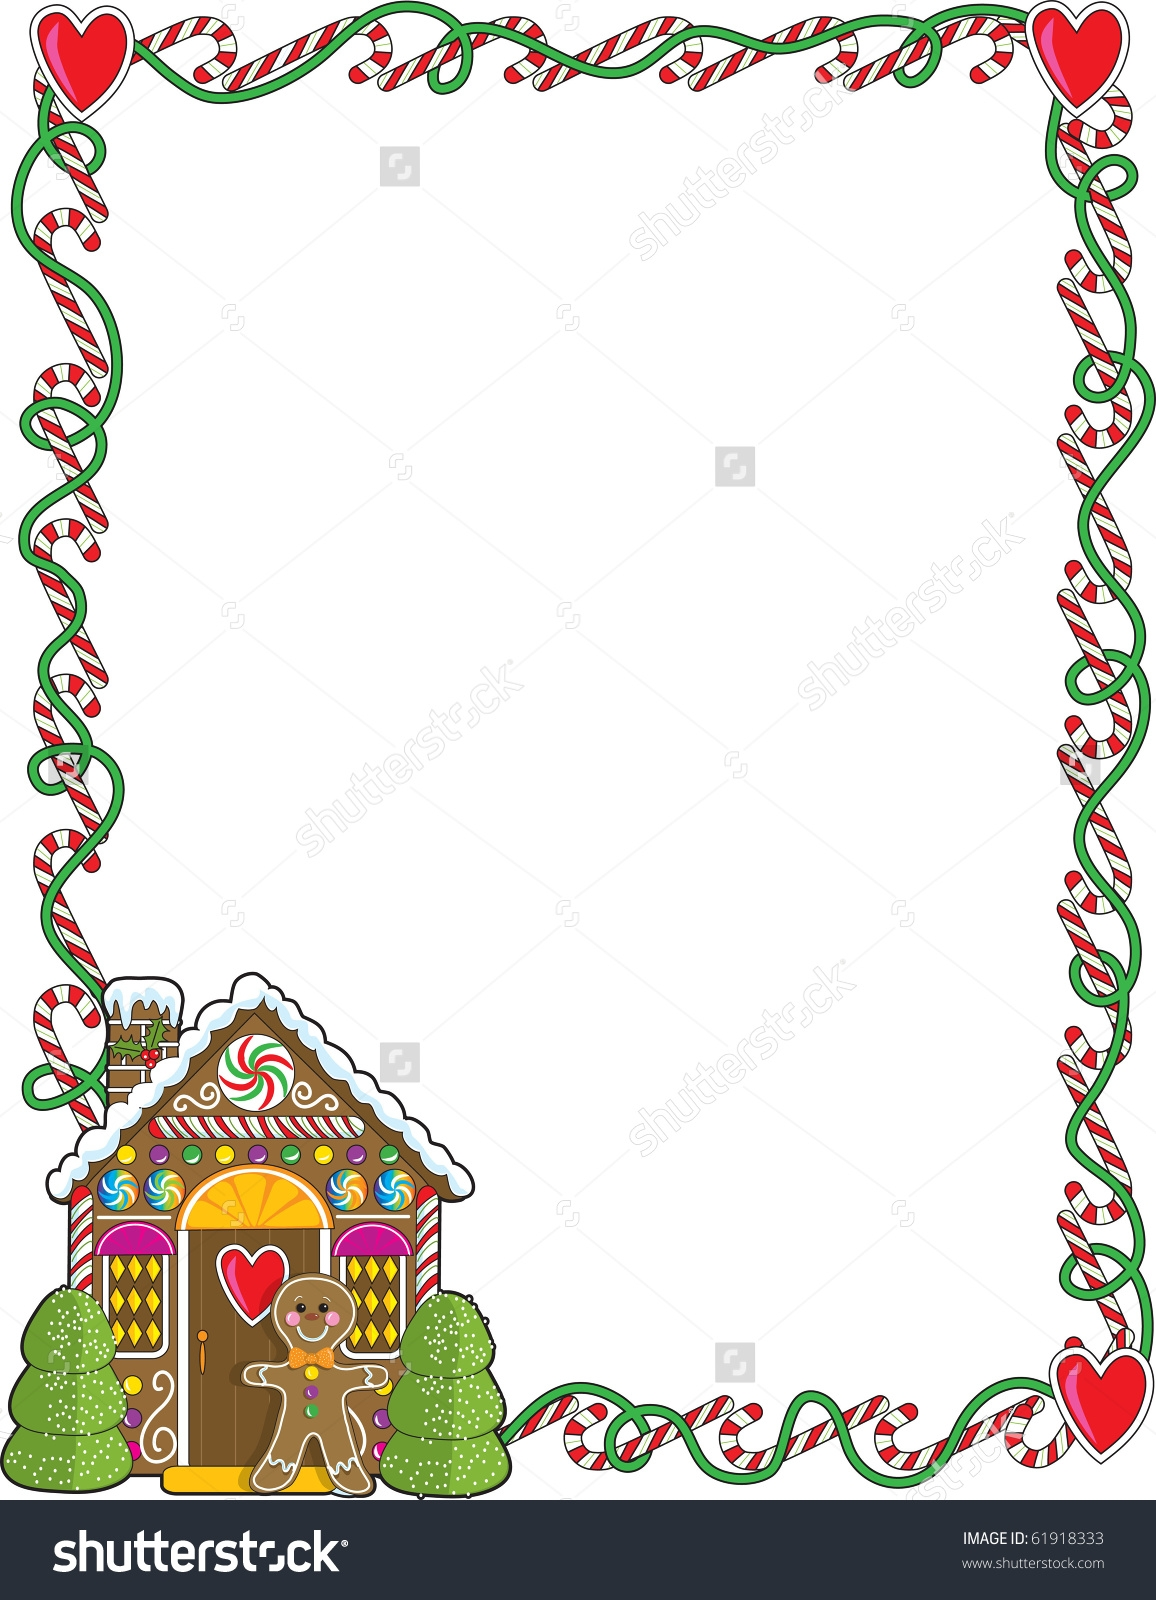 Gingerbread House Border Clipart.